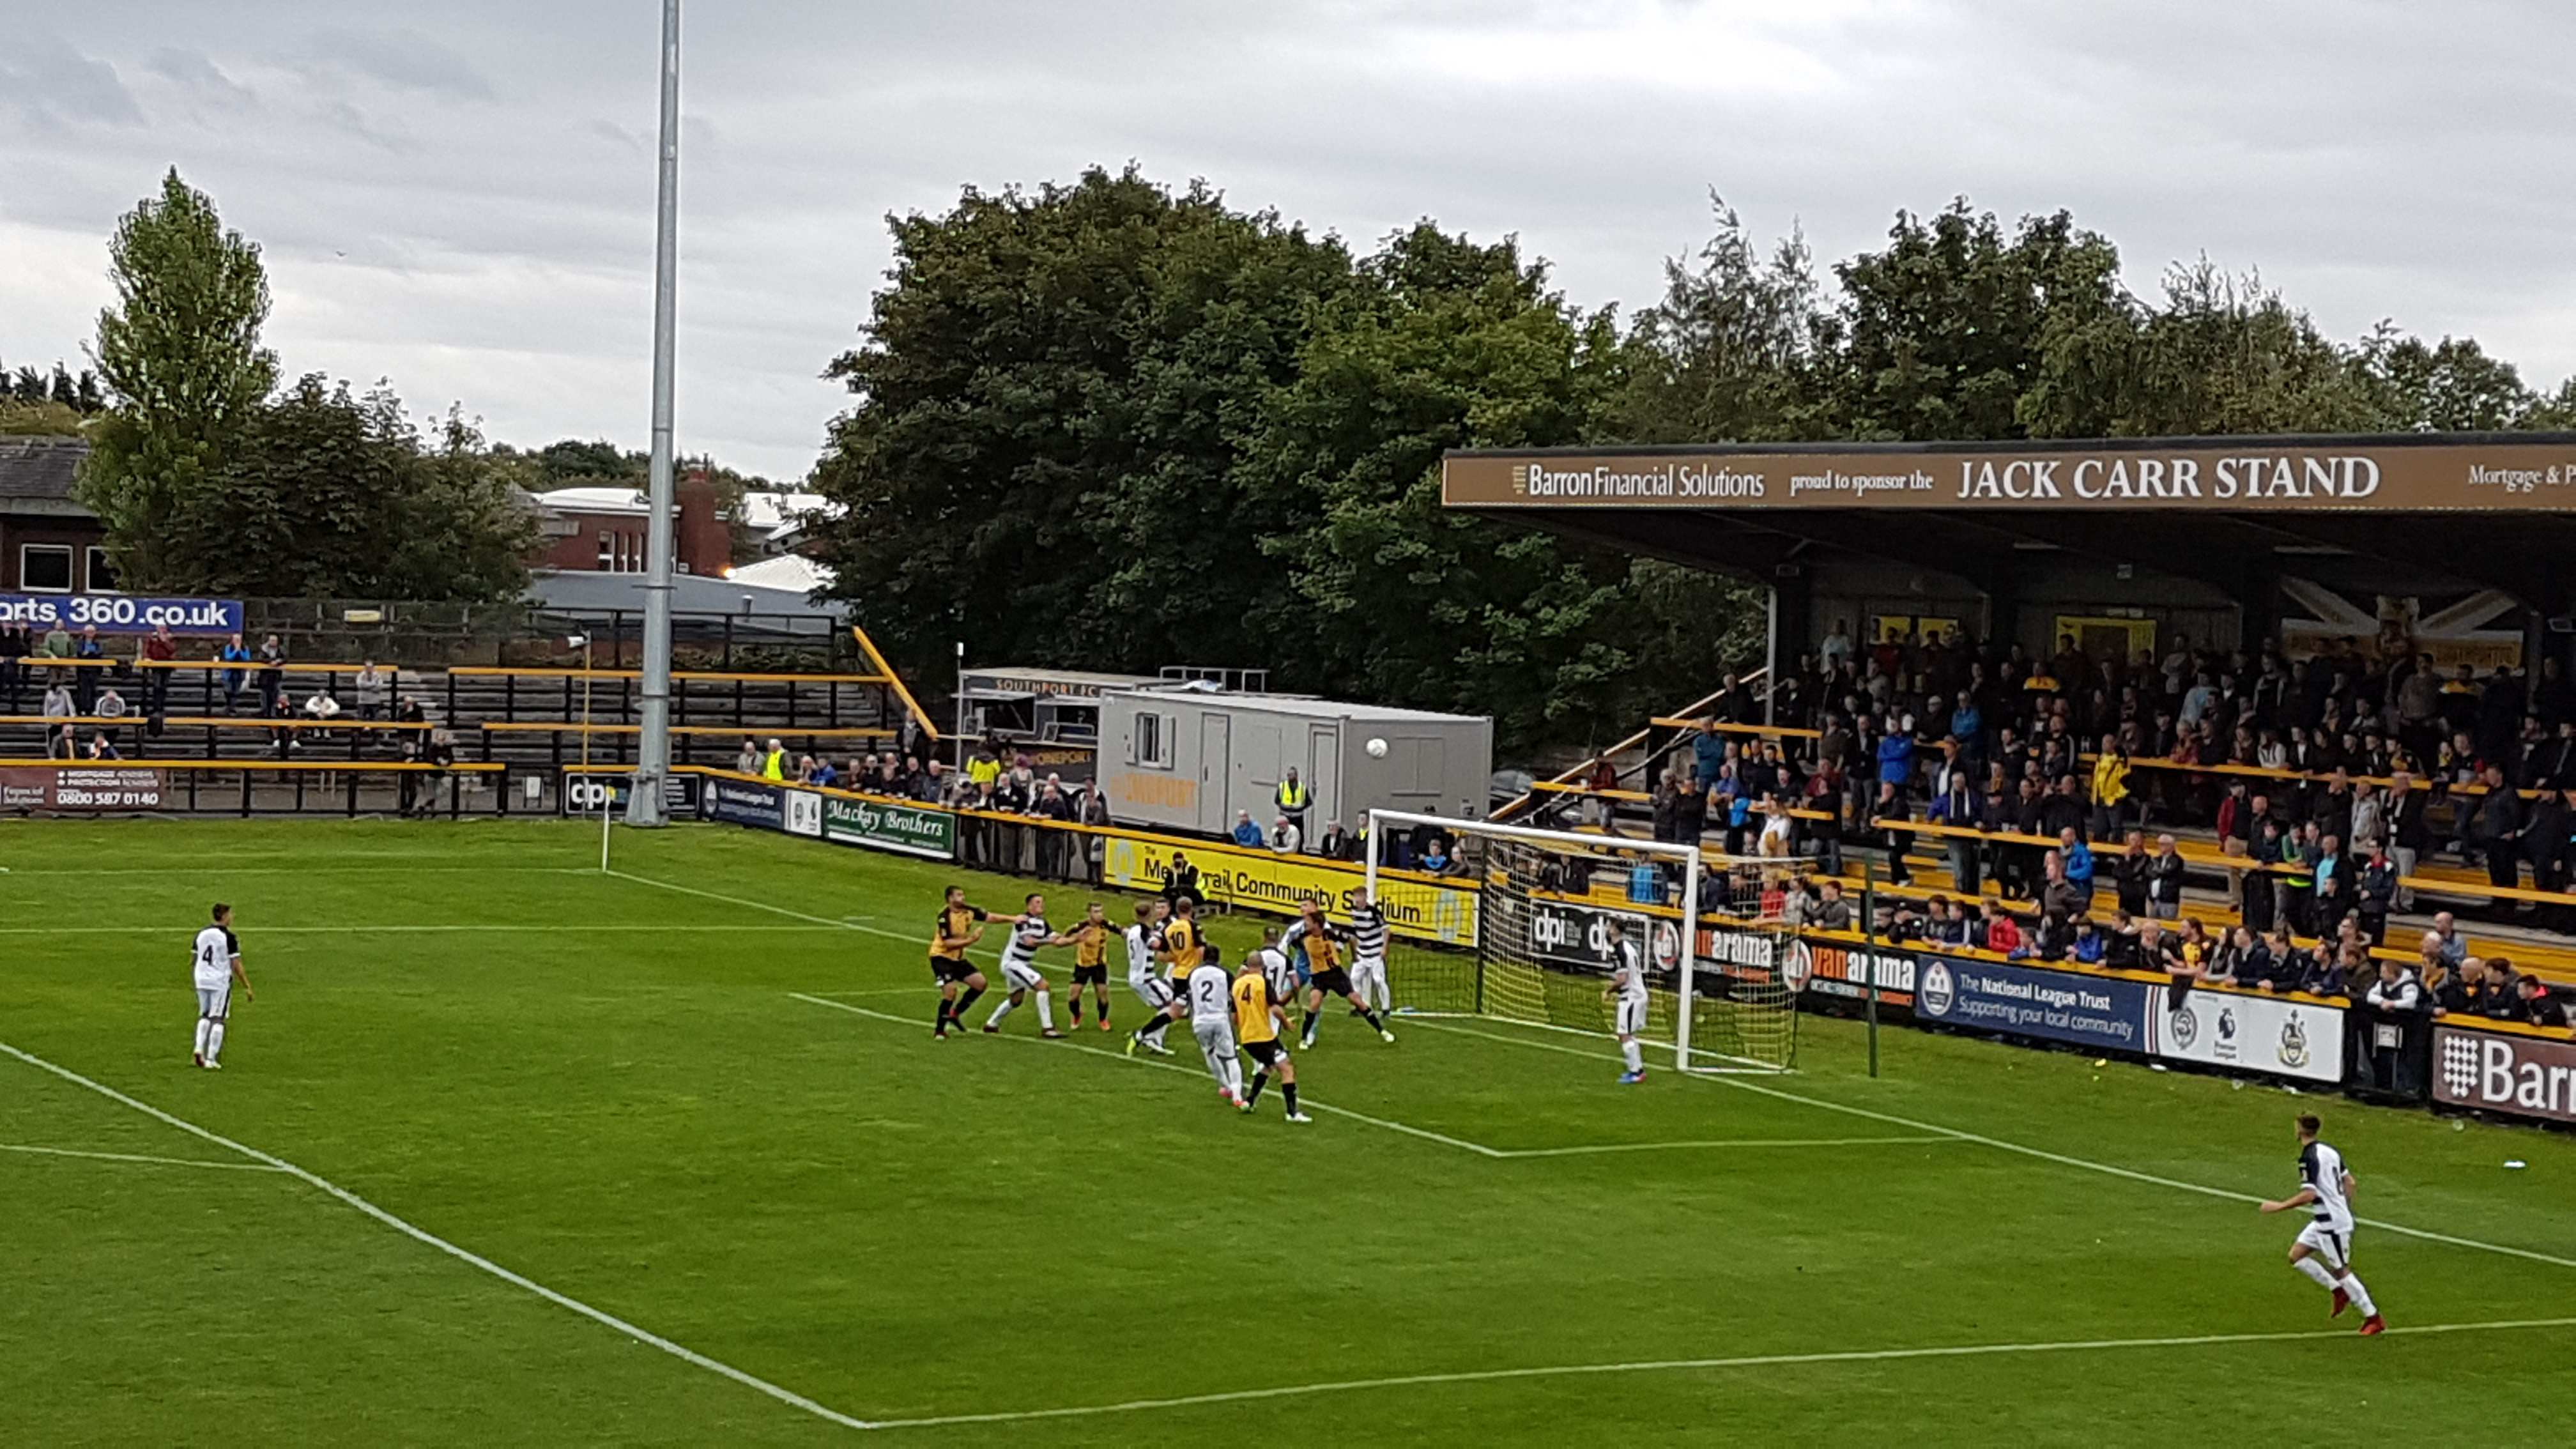 The over-riding emotion was one of frustration as the Southport players made their way off the pitch having been held to a goalless draw by Darlington.    The SandgroundersÂ' current run of one defeat from six games points to the improvements made after a tough start to the season, but they must now...